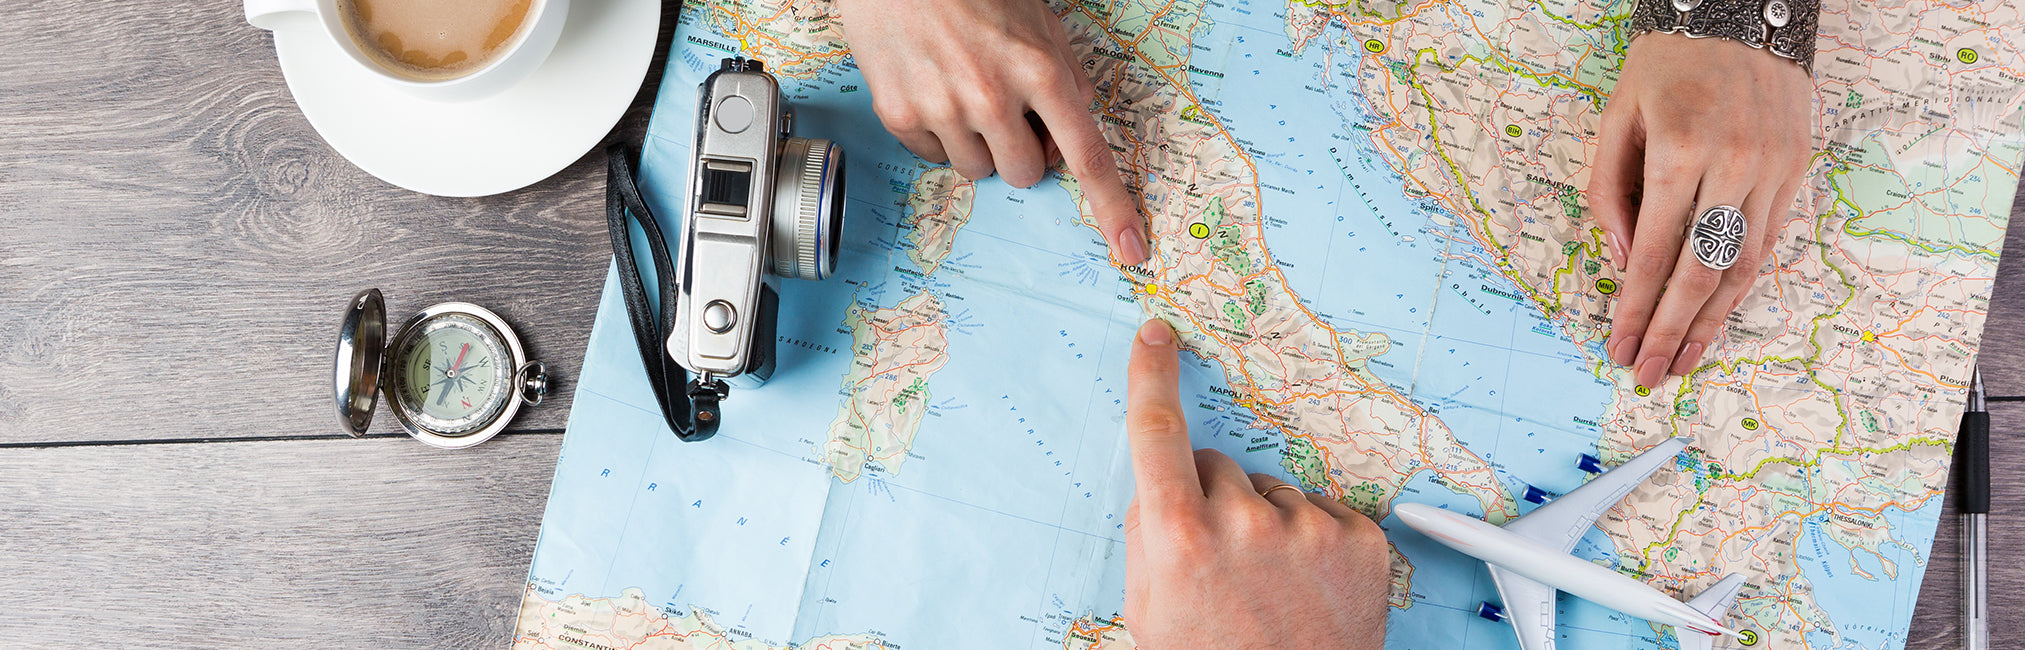 3 Ways to Stay Safe While Traveling